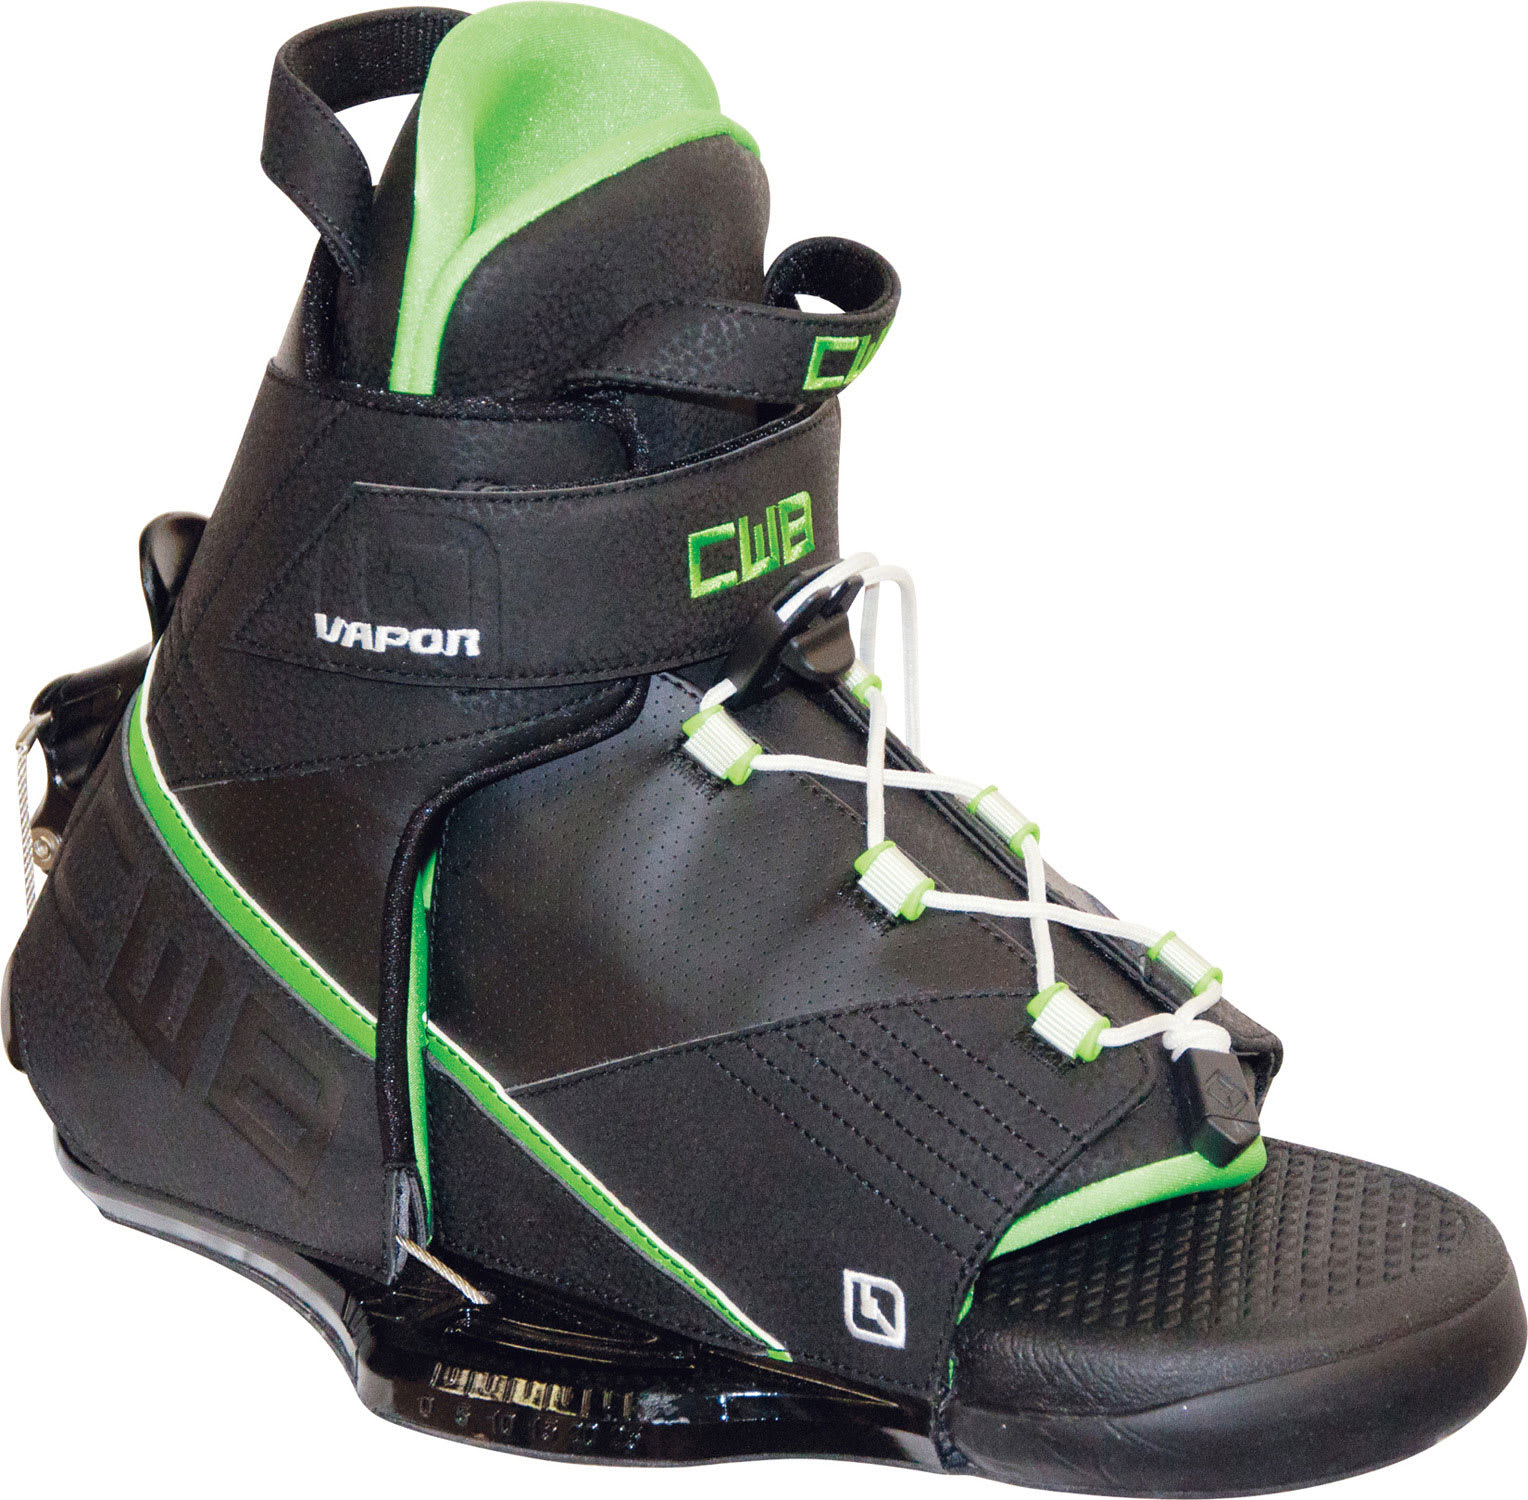 Shop for CWB Vapor Wakeboard Bindings - Men's